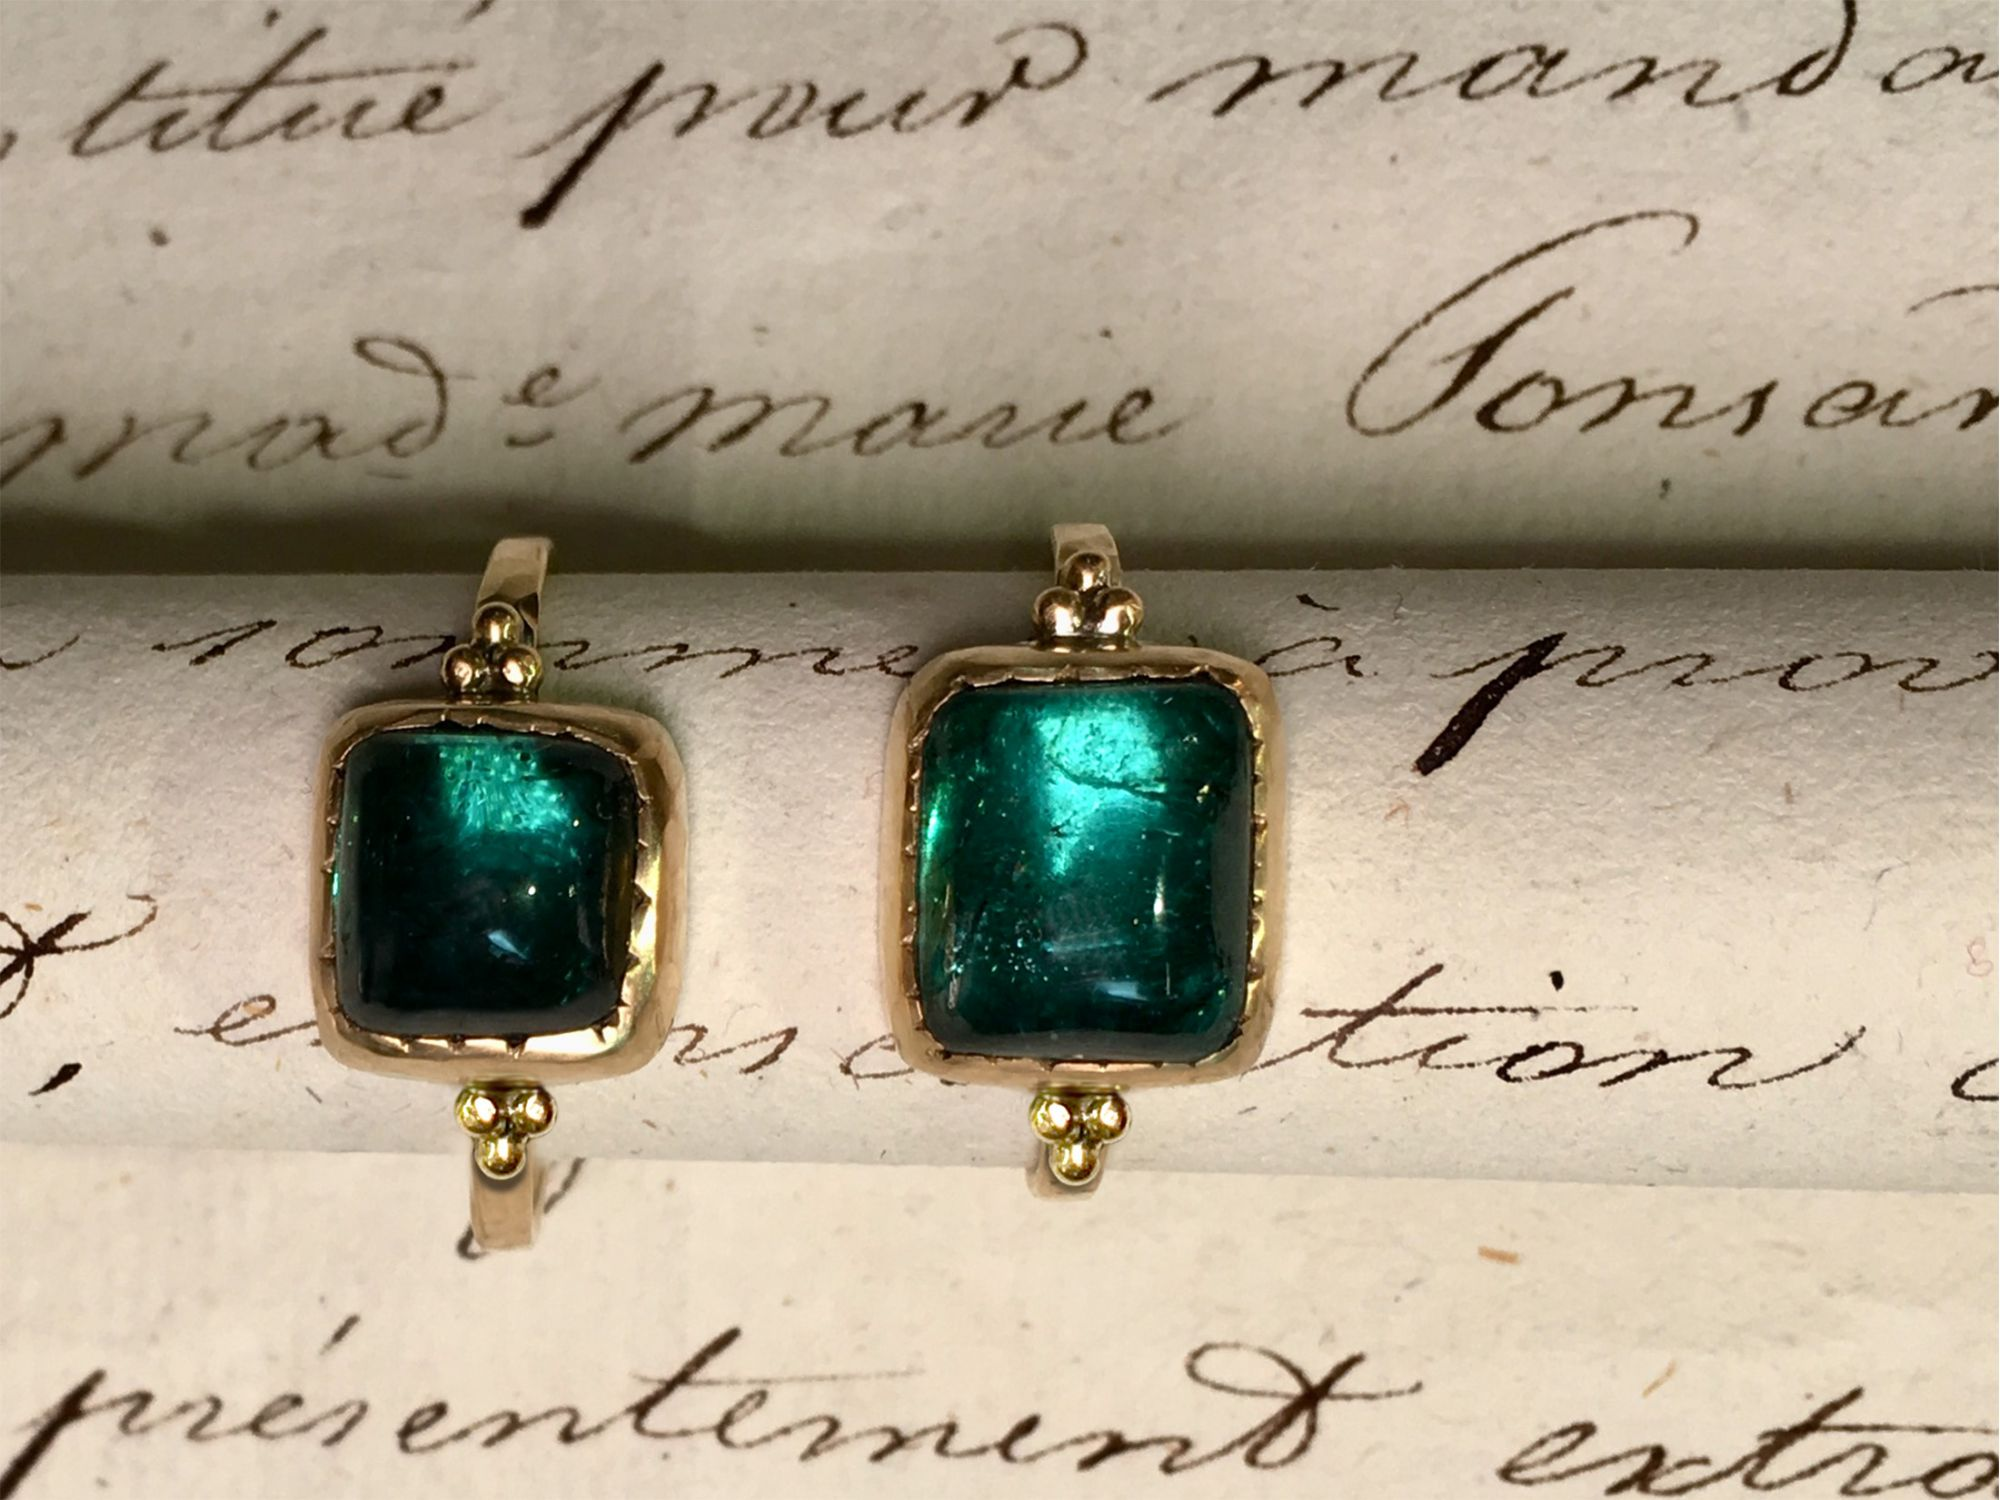 Queen yellow gold rectangular green tourmaline rings by Emmanuelle zysman